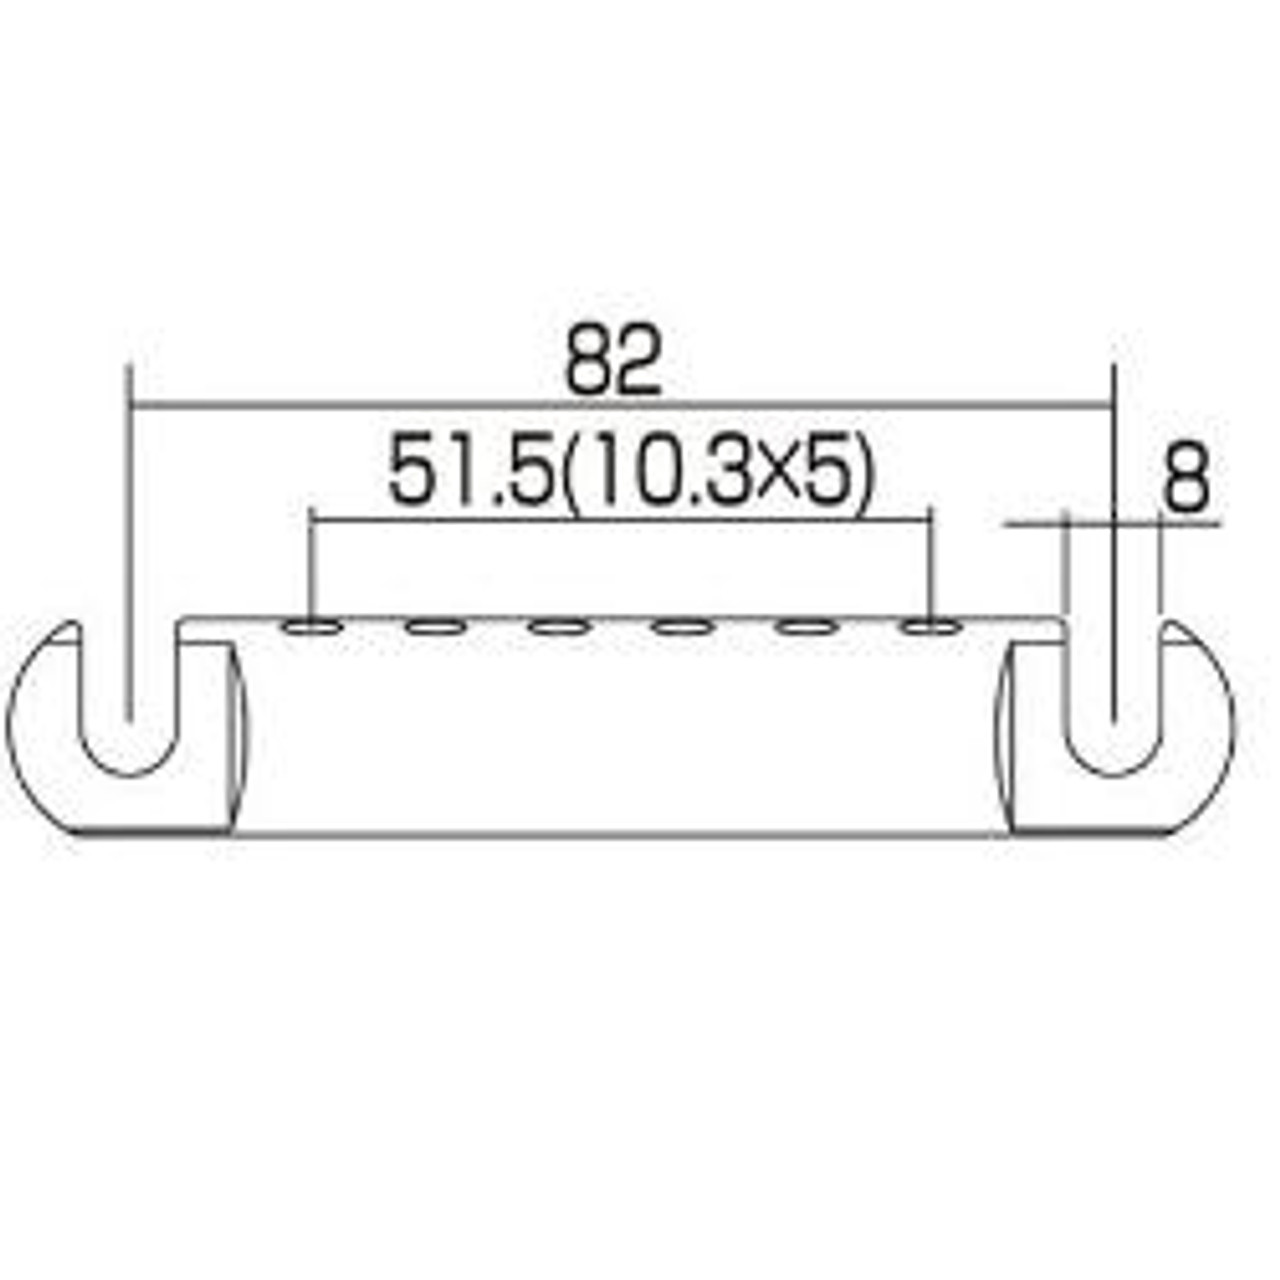 Stop Tailpiece w/ USA Thread Studs-Dimensions